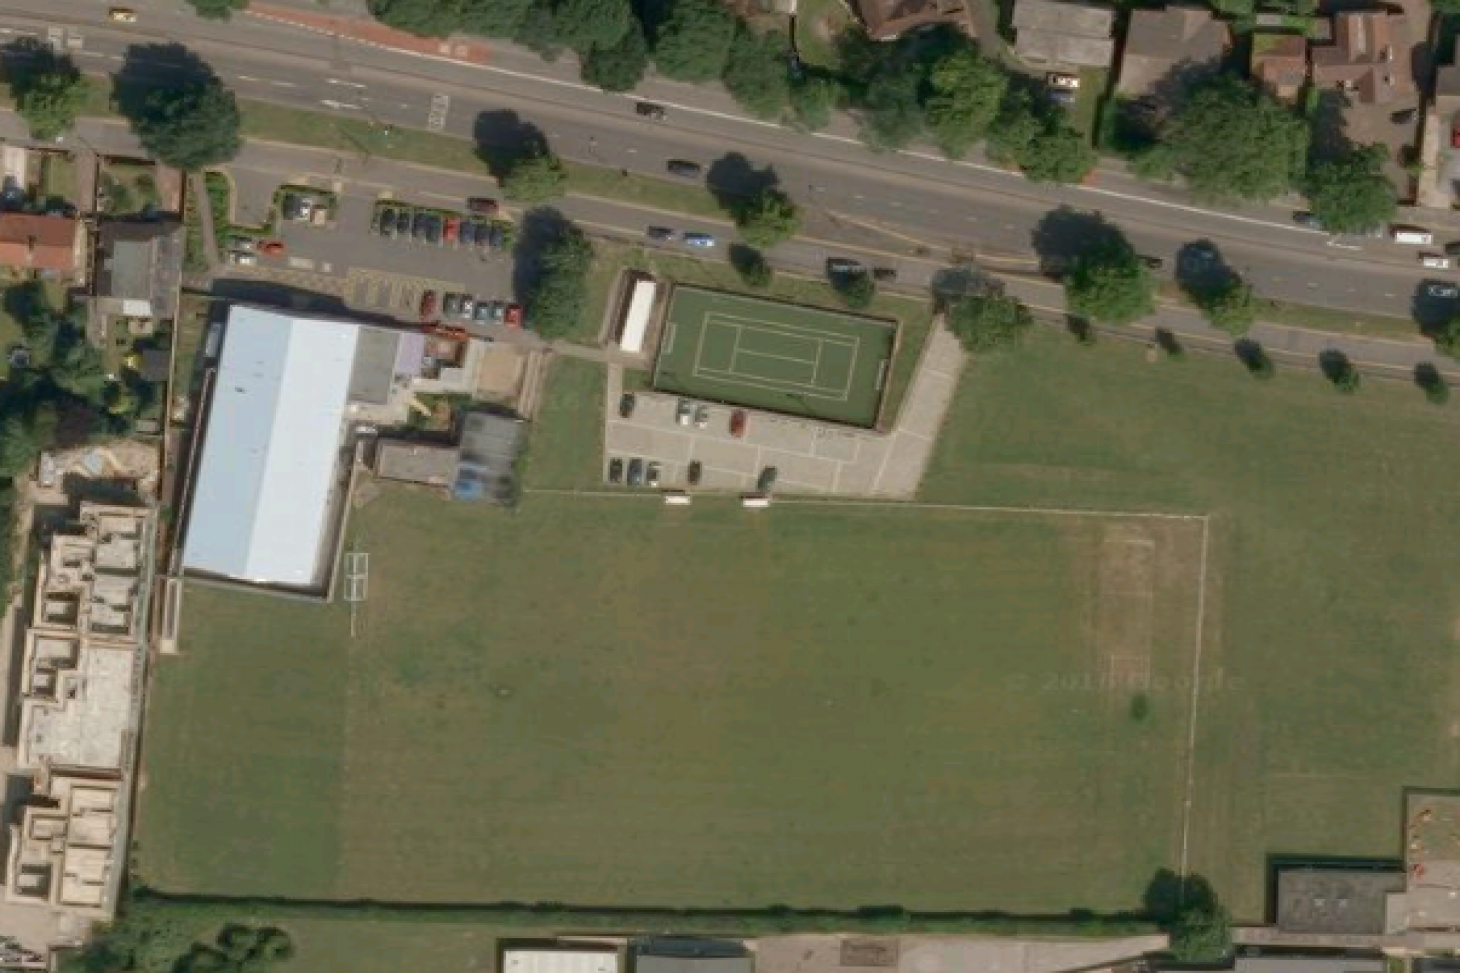 Chaul End Community Centre 11 a side | Grass football pitch